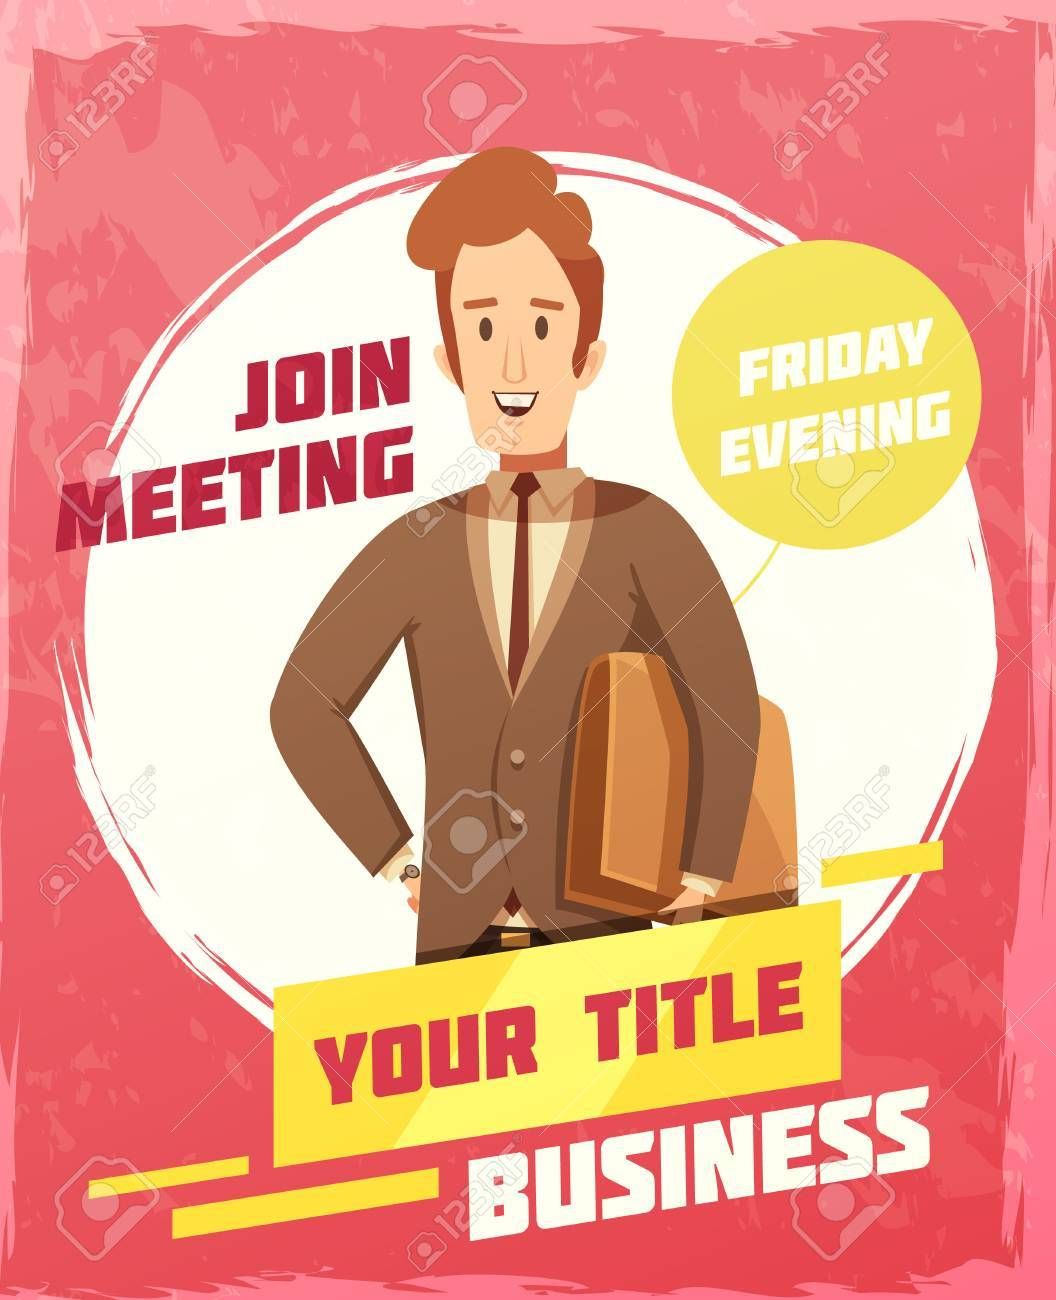 Business meeting poster with invitation and date symbols cartoon business meeting poster with invitation and date symbols cartoon vector illustration stock vector 82189931 stopboris Image collections